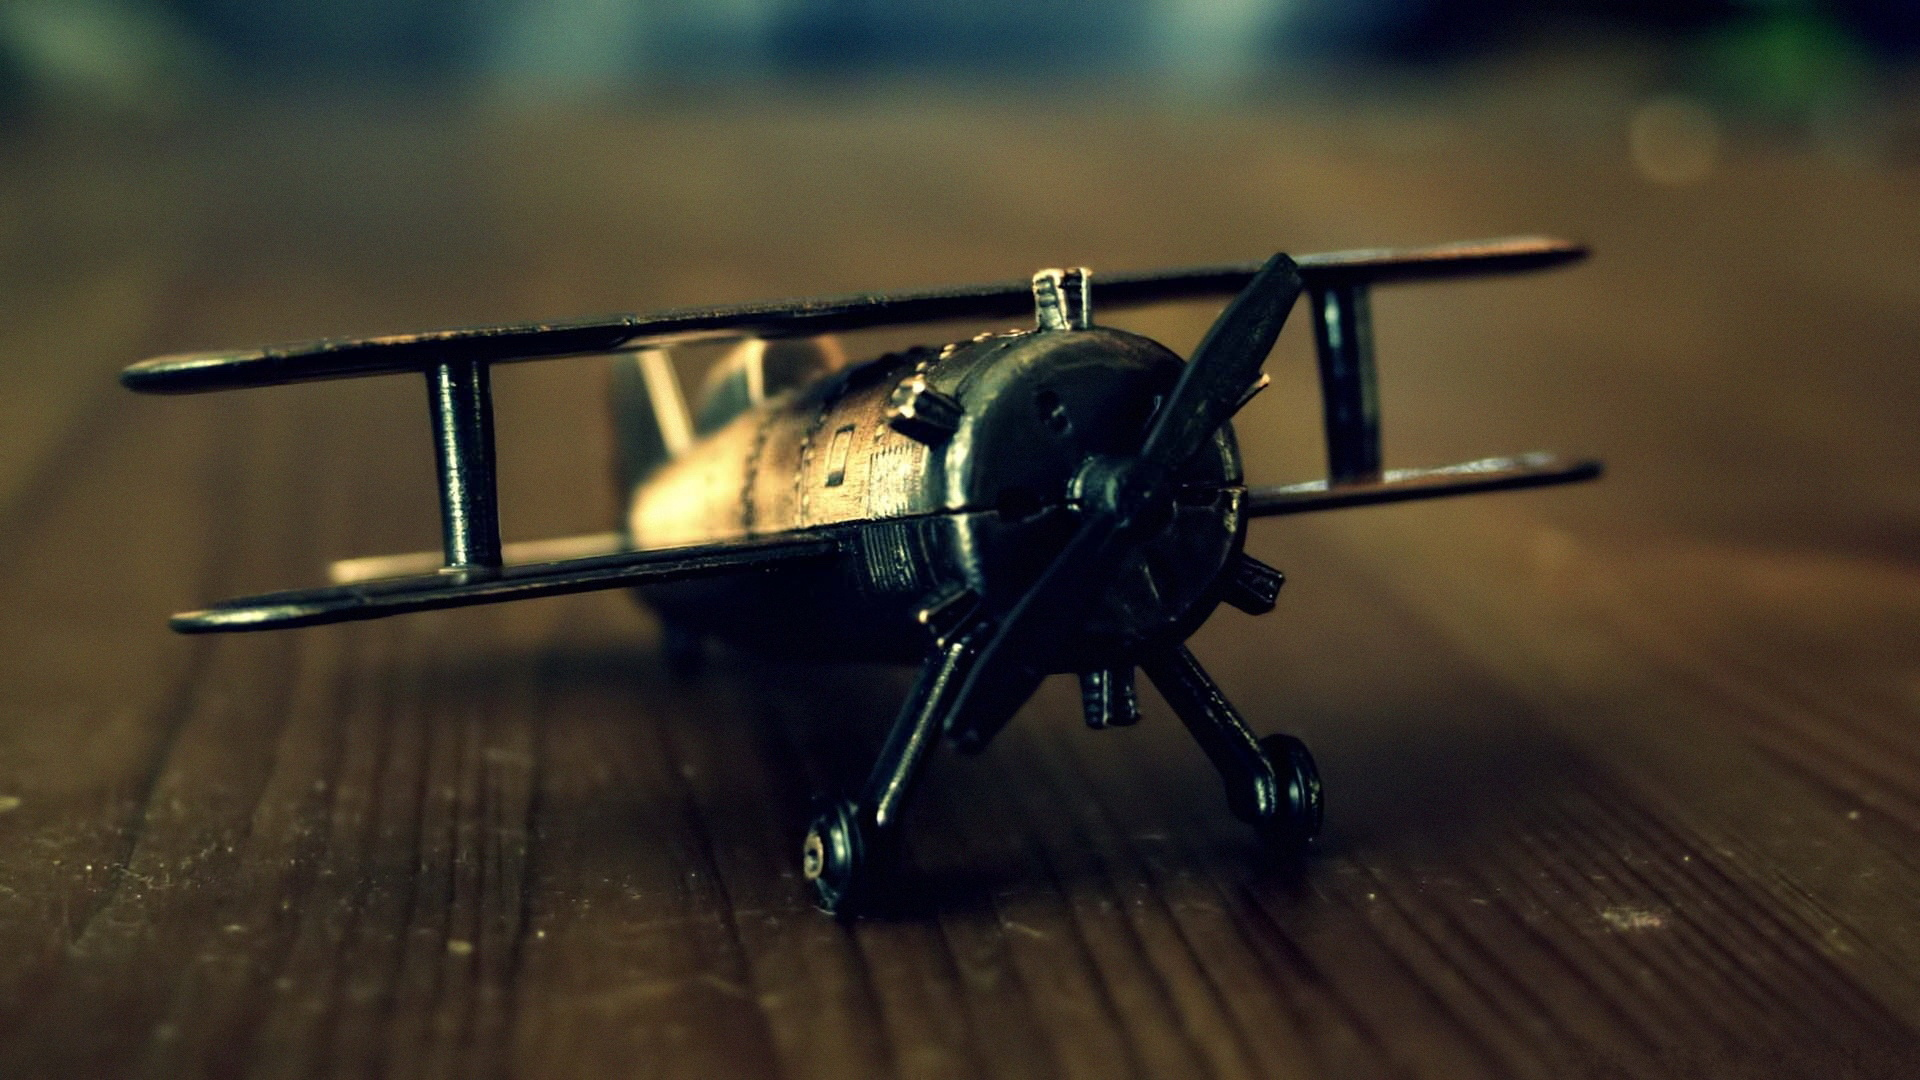 Toy Plane Wallpaper